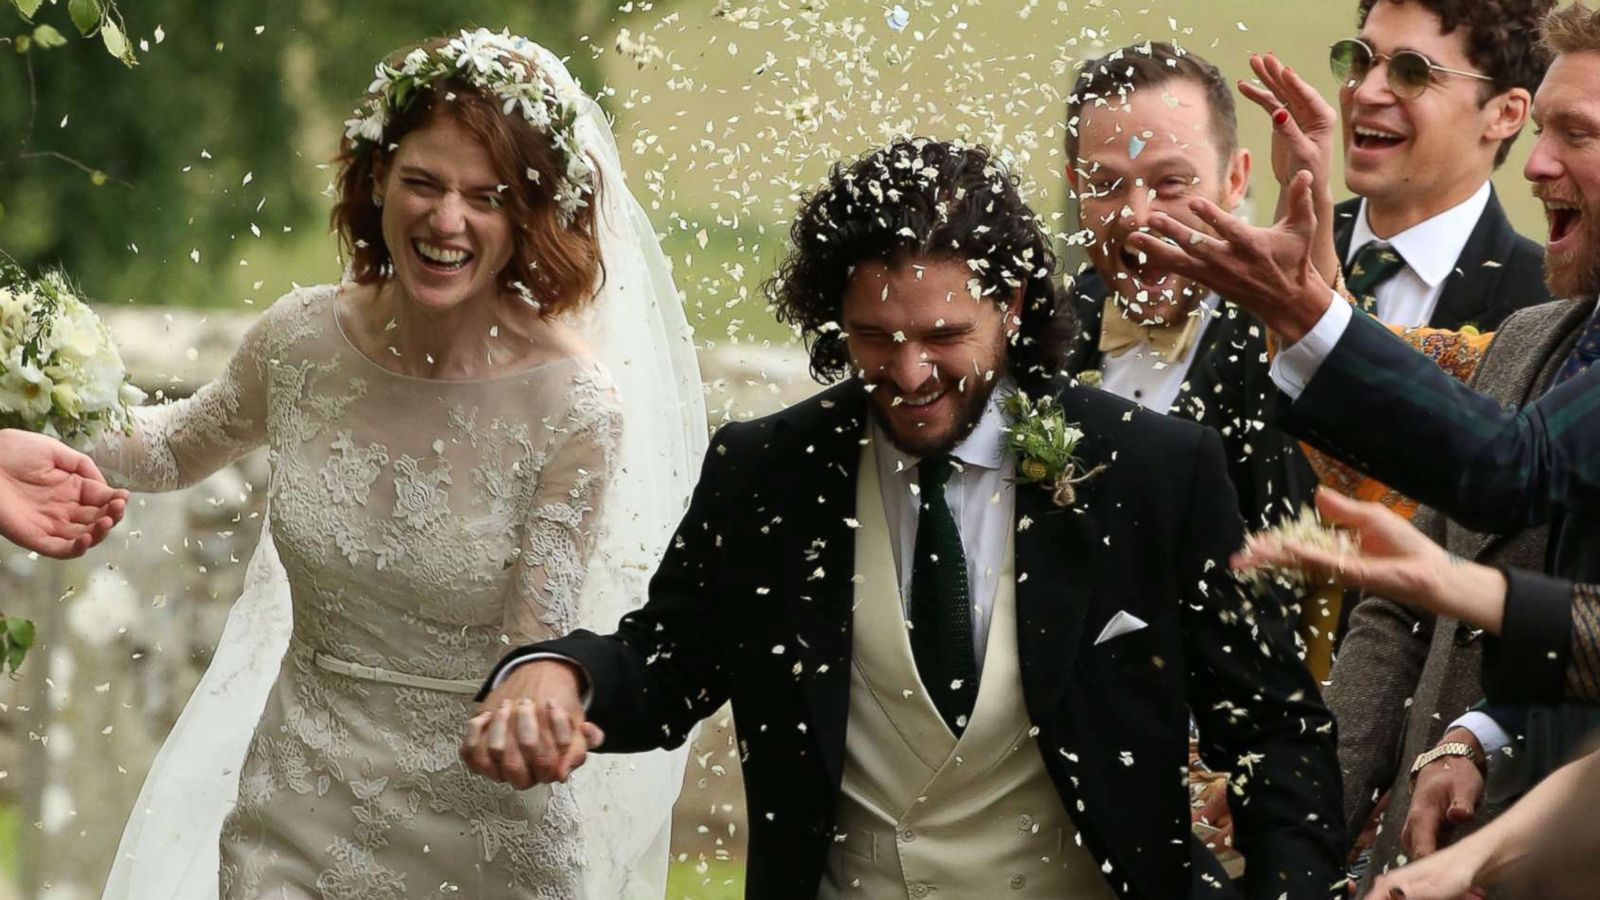 Kit Harington Wedding.Inside Game Of Thrones Stars Kit Harington And Rose Leslie S